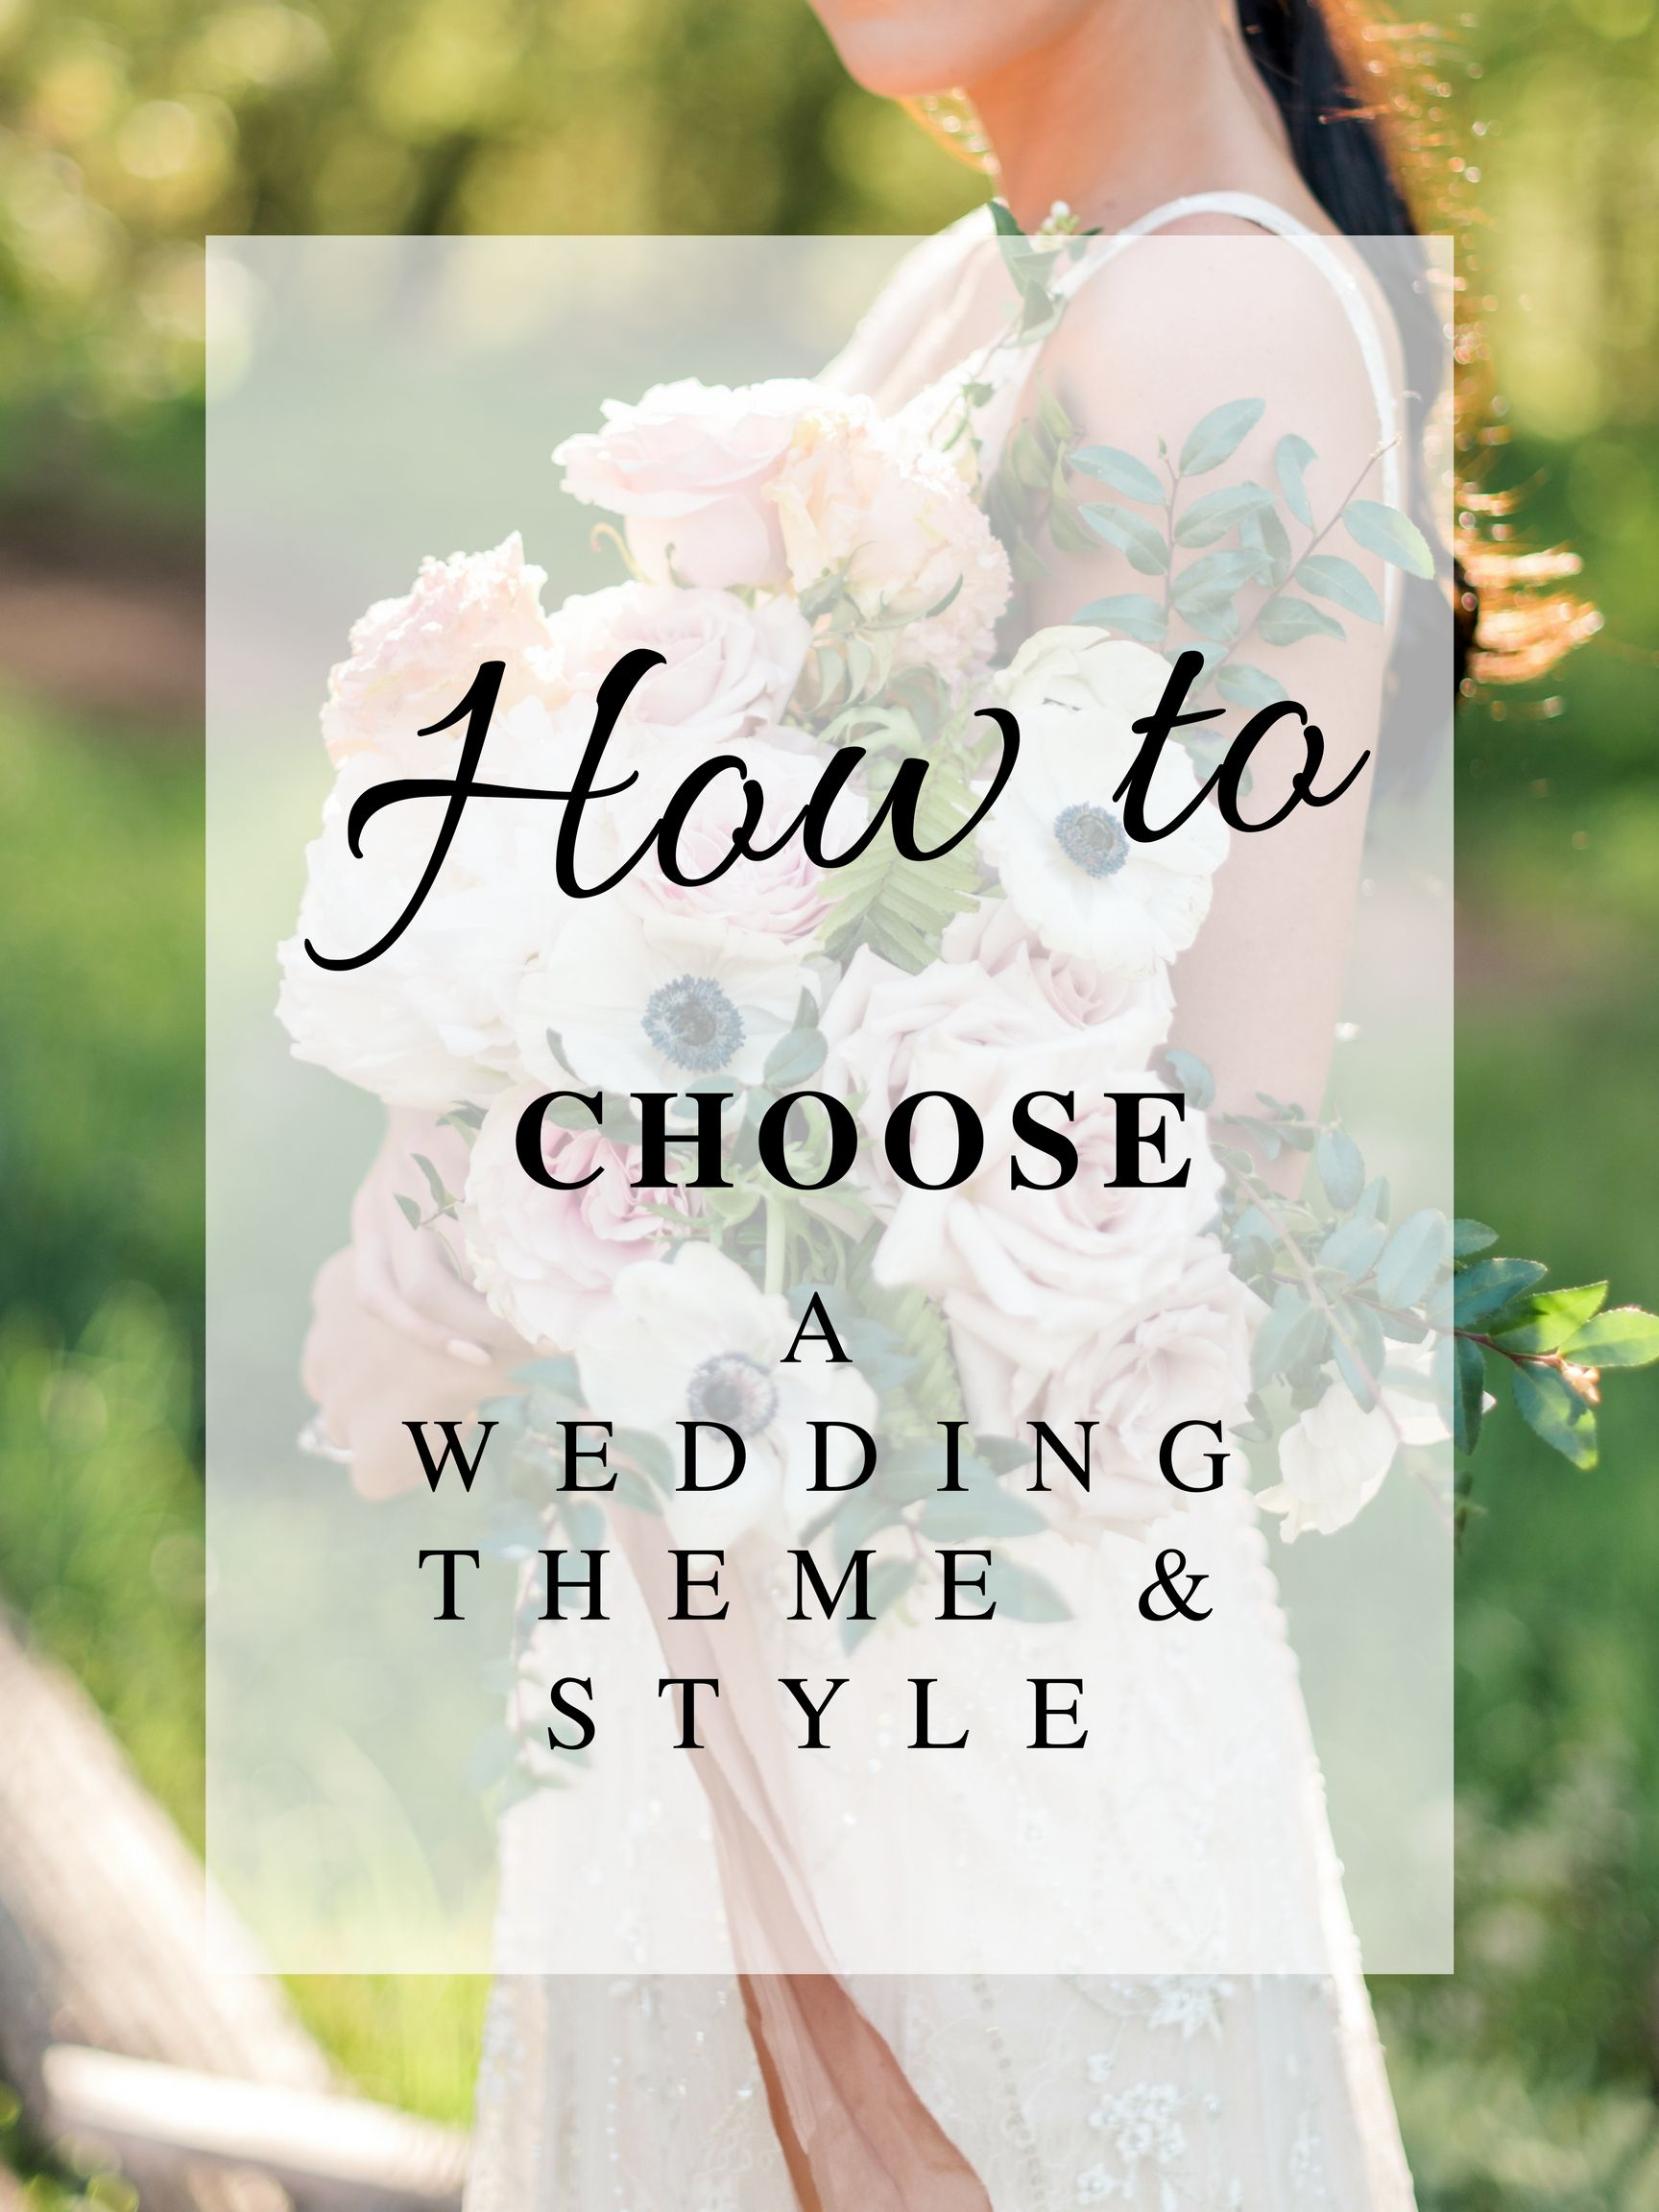 How to Choose Your Wedding Theme & Style | Florists, Floral designs ...